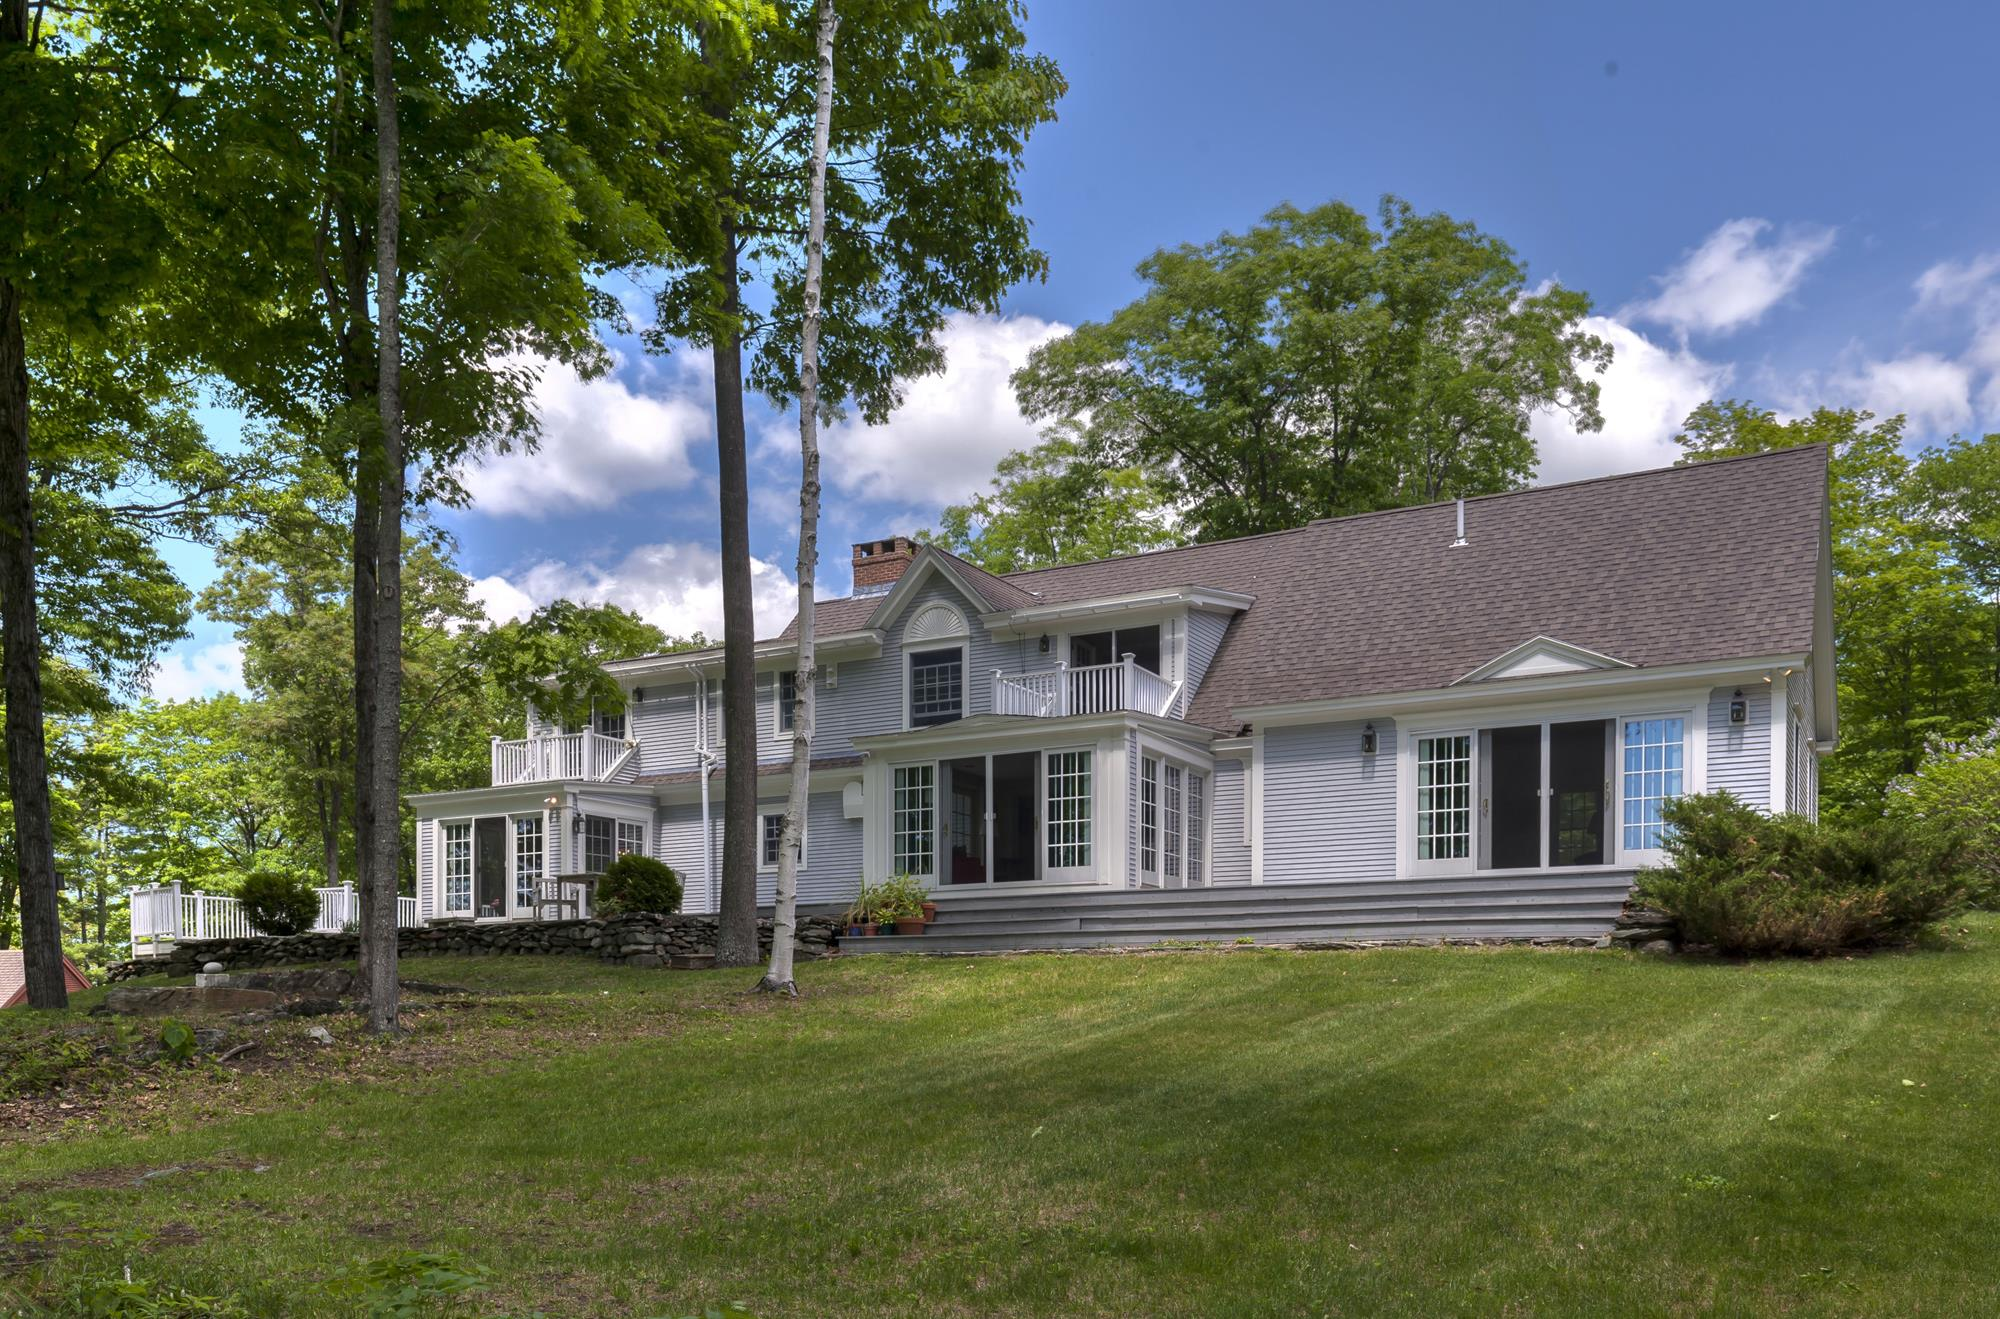 Single Family Home for Sale at Columbus Jordan Road, Plainfield Columbus Jordan Rd Plainfield, New Hampshire, 03770 United States